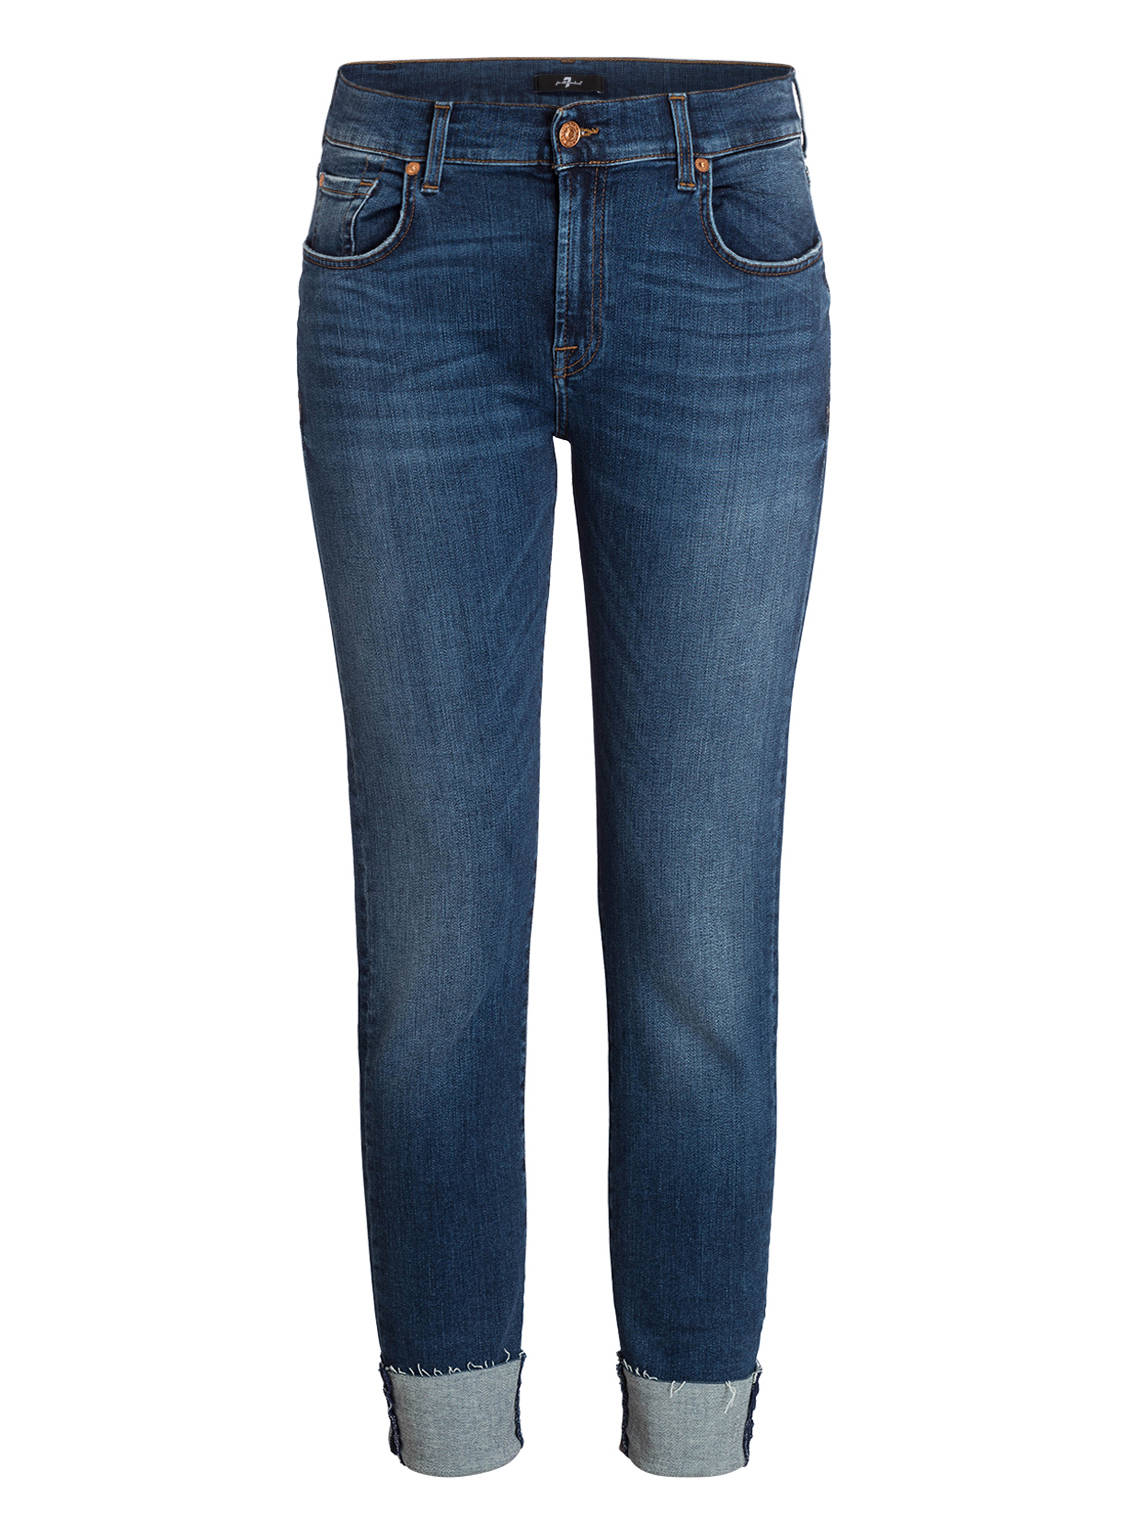 7 for all mankind Skinny-Jeans RELAXED